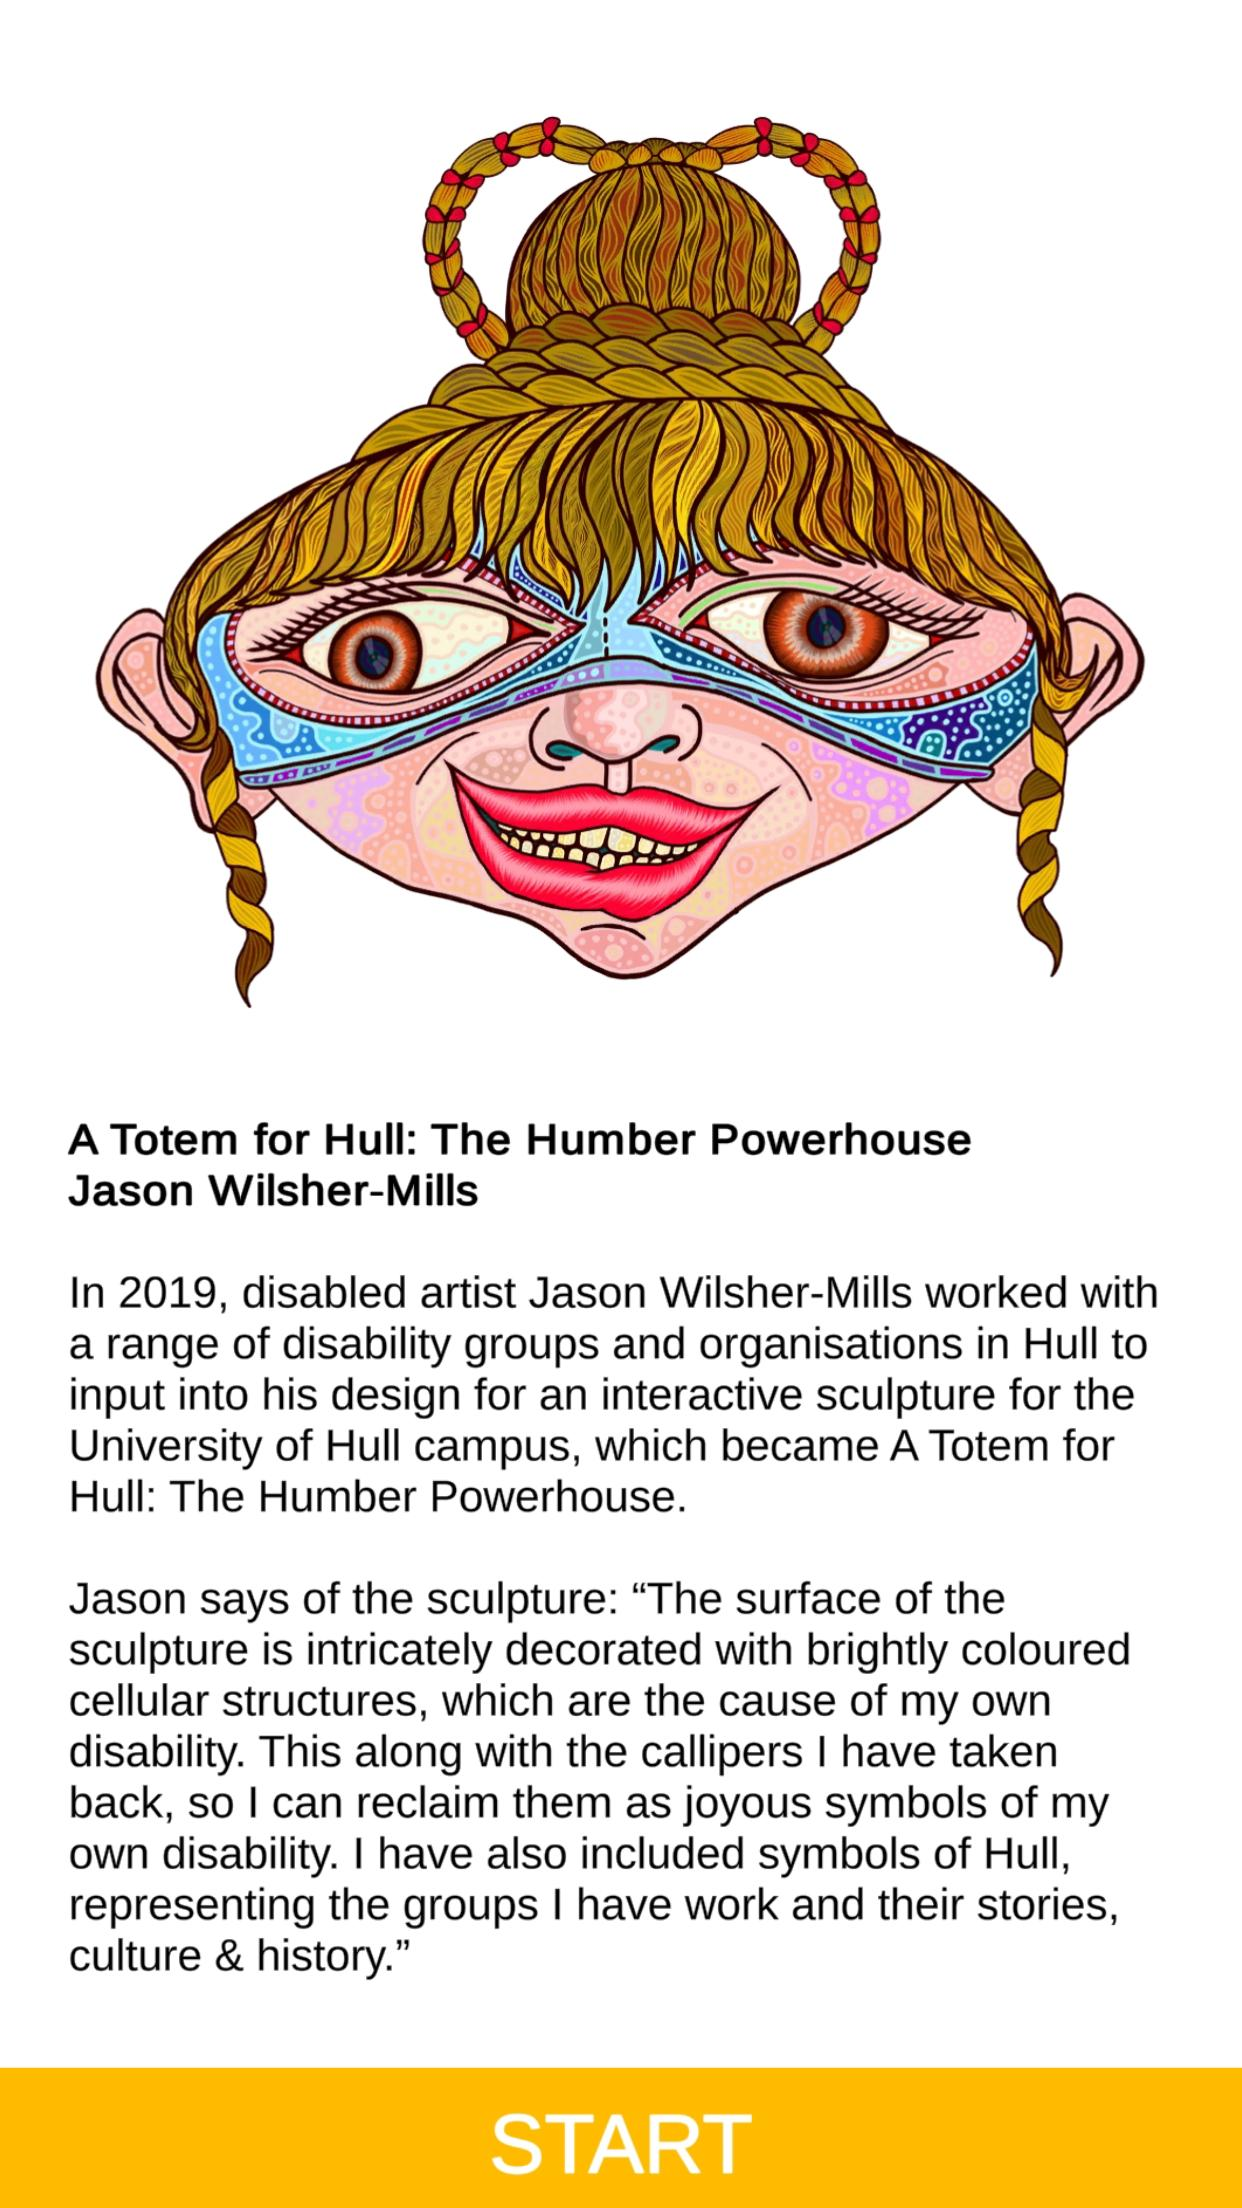 A Totem for Hull poster